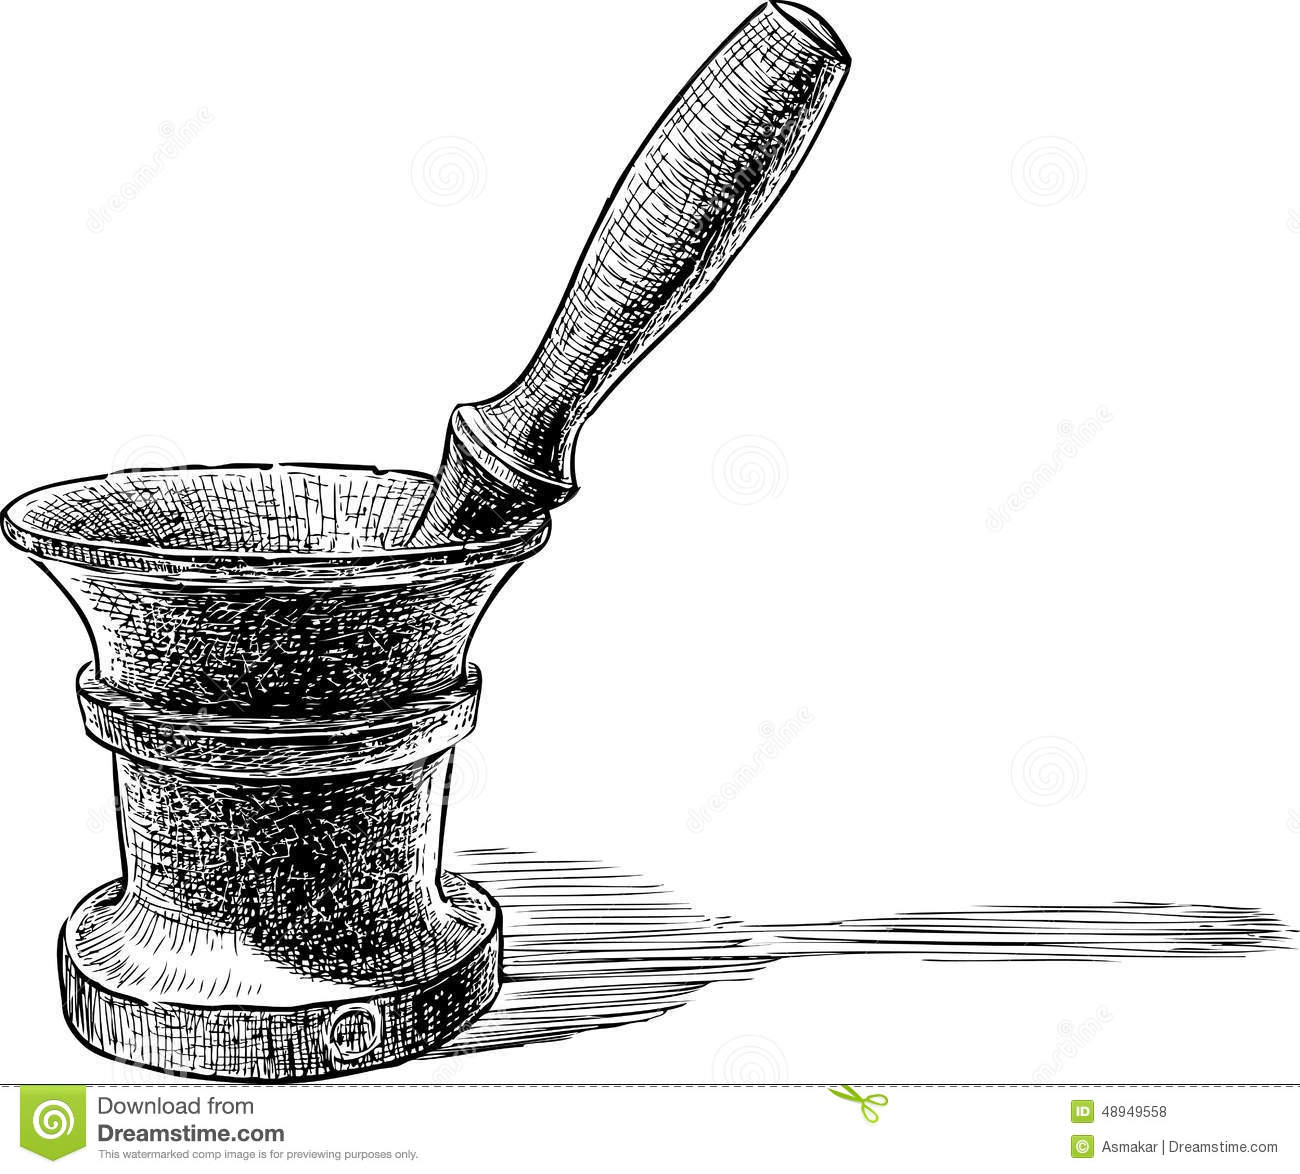 Mortar stock vector. Illustration of metal, bowl, vintage - 48949558 for Mortar And Pestle Drawing  45gtk